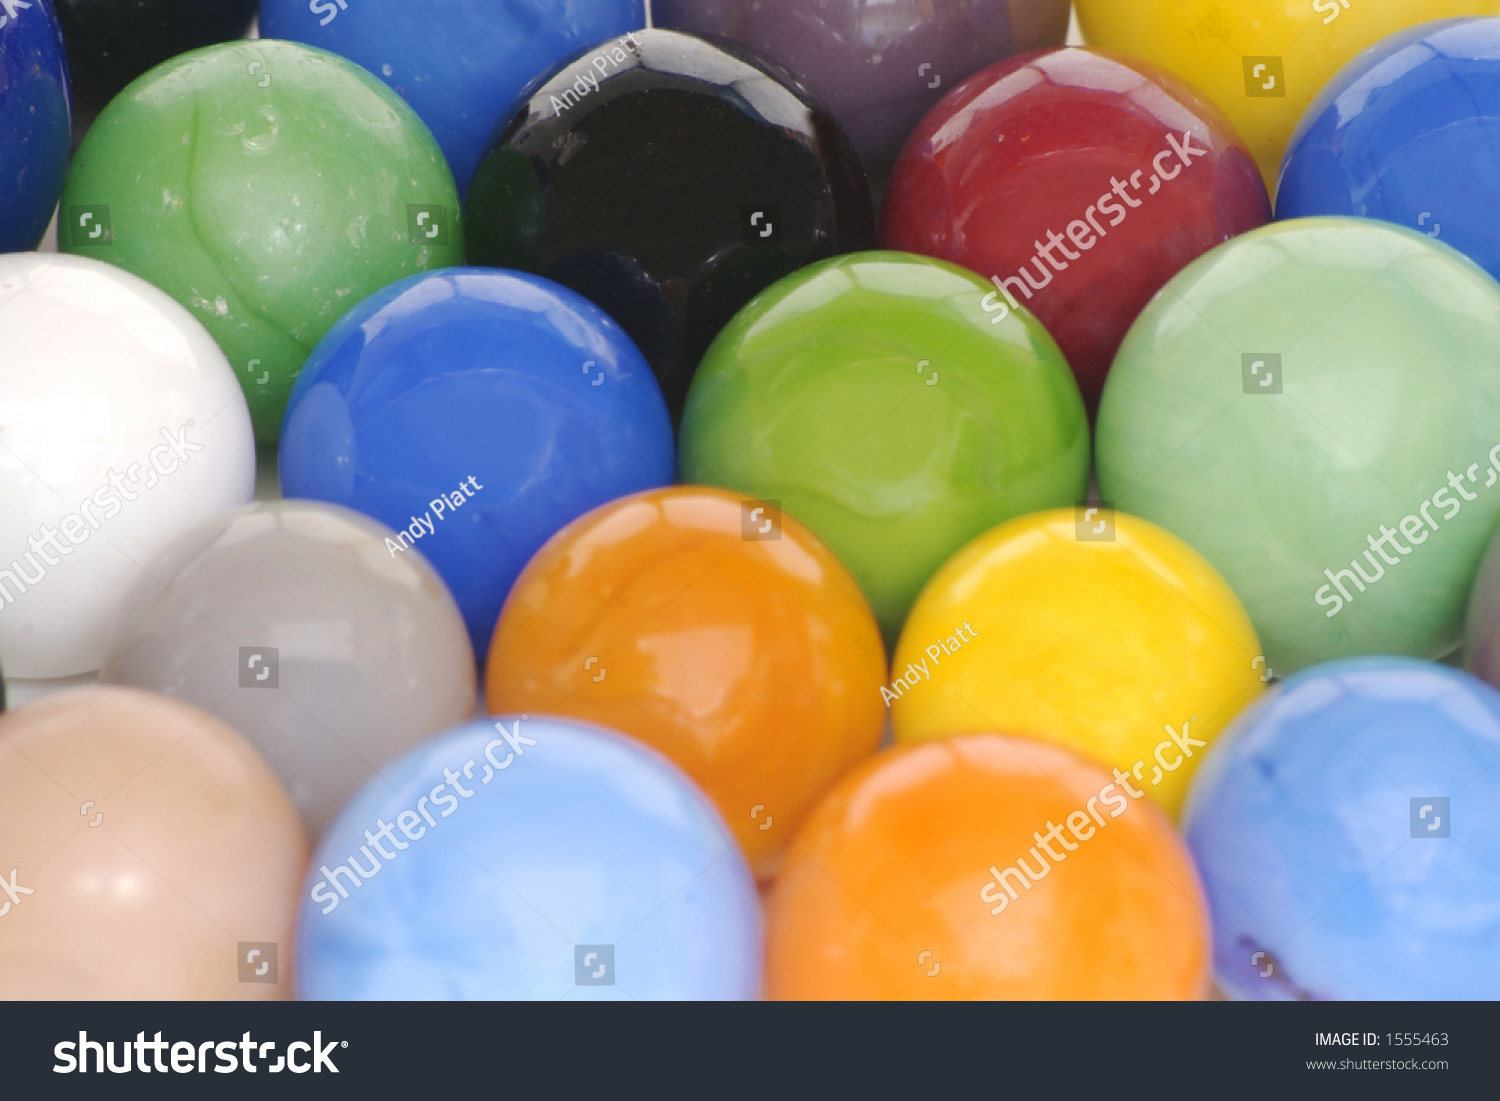 Solid White Toy Marbles : A solid background of brightly colored toy glass marbles